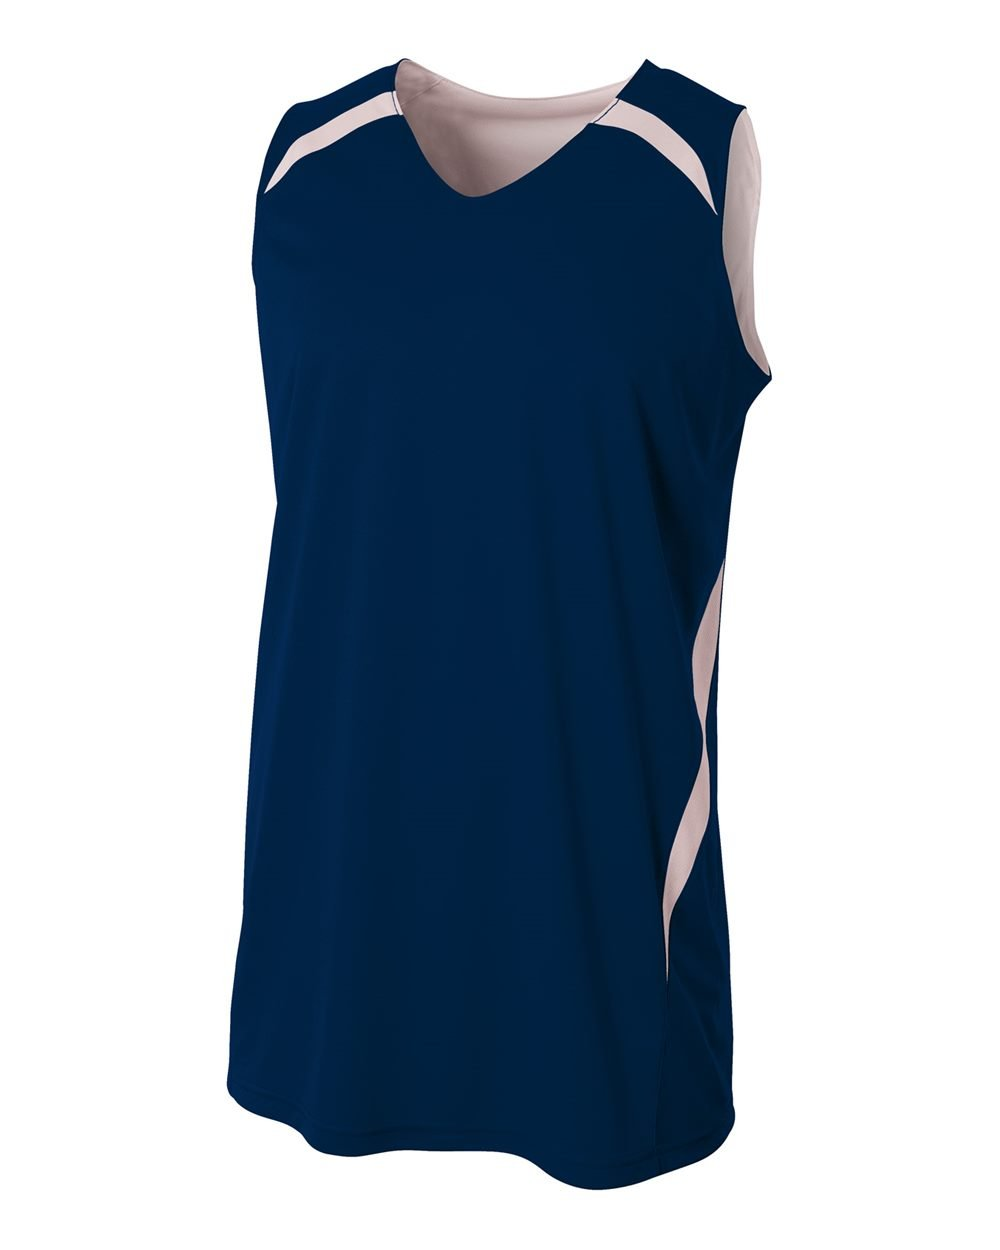 best sneakers 7cde9 729e0 2-Color Reversible (CUSTOM or Blank Back) Basketball Uniform Jersey Tank  Top (Available in 10 Colors in Youth & Adult Sizes)